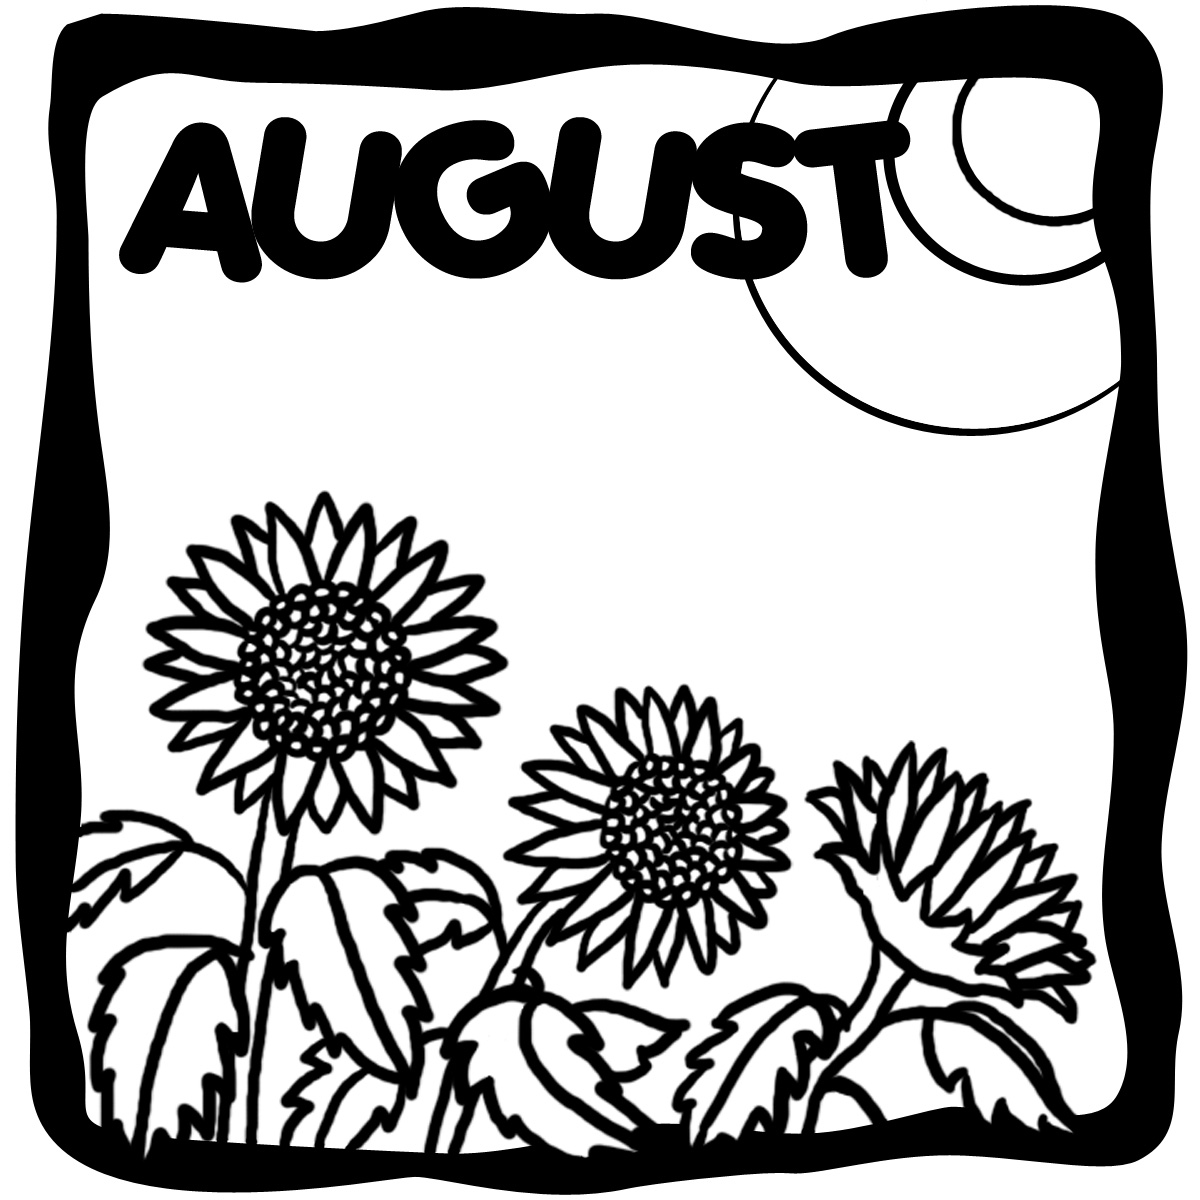 1200x1200 Did You Know August Has The Highest Percentage Of Births